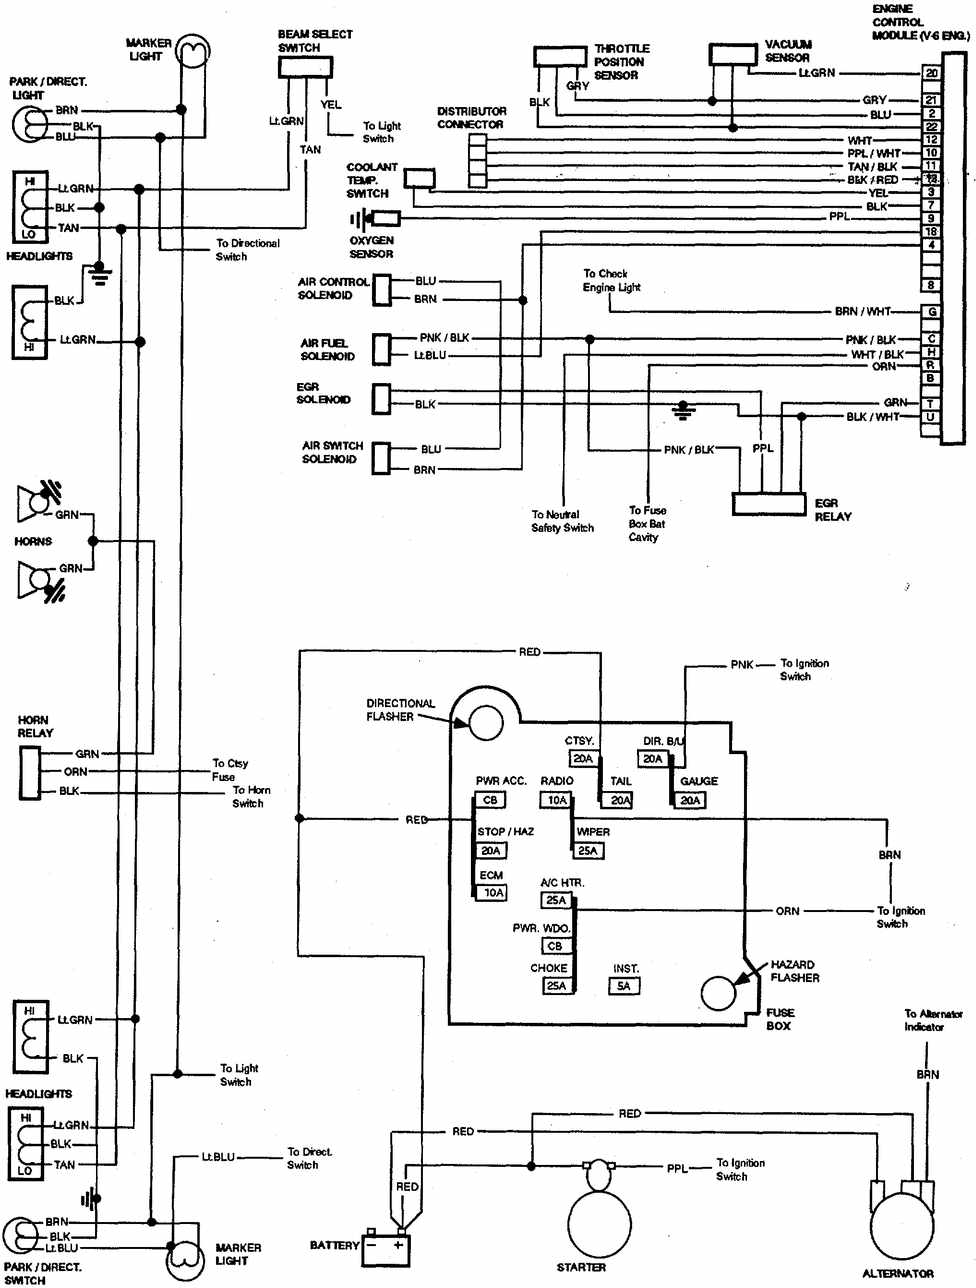 1985 Gmc Sierra Classic Wiring Diagram Diagrams Ford Ranger Pick Up Schematic Chevrolet V8 Trucks 1981 1987 Electrical Truck